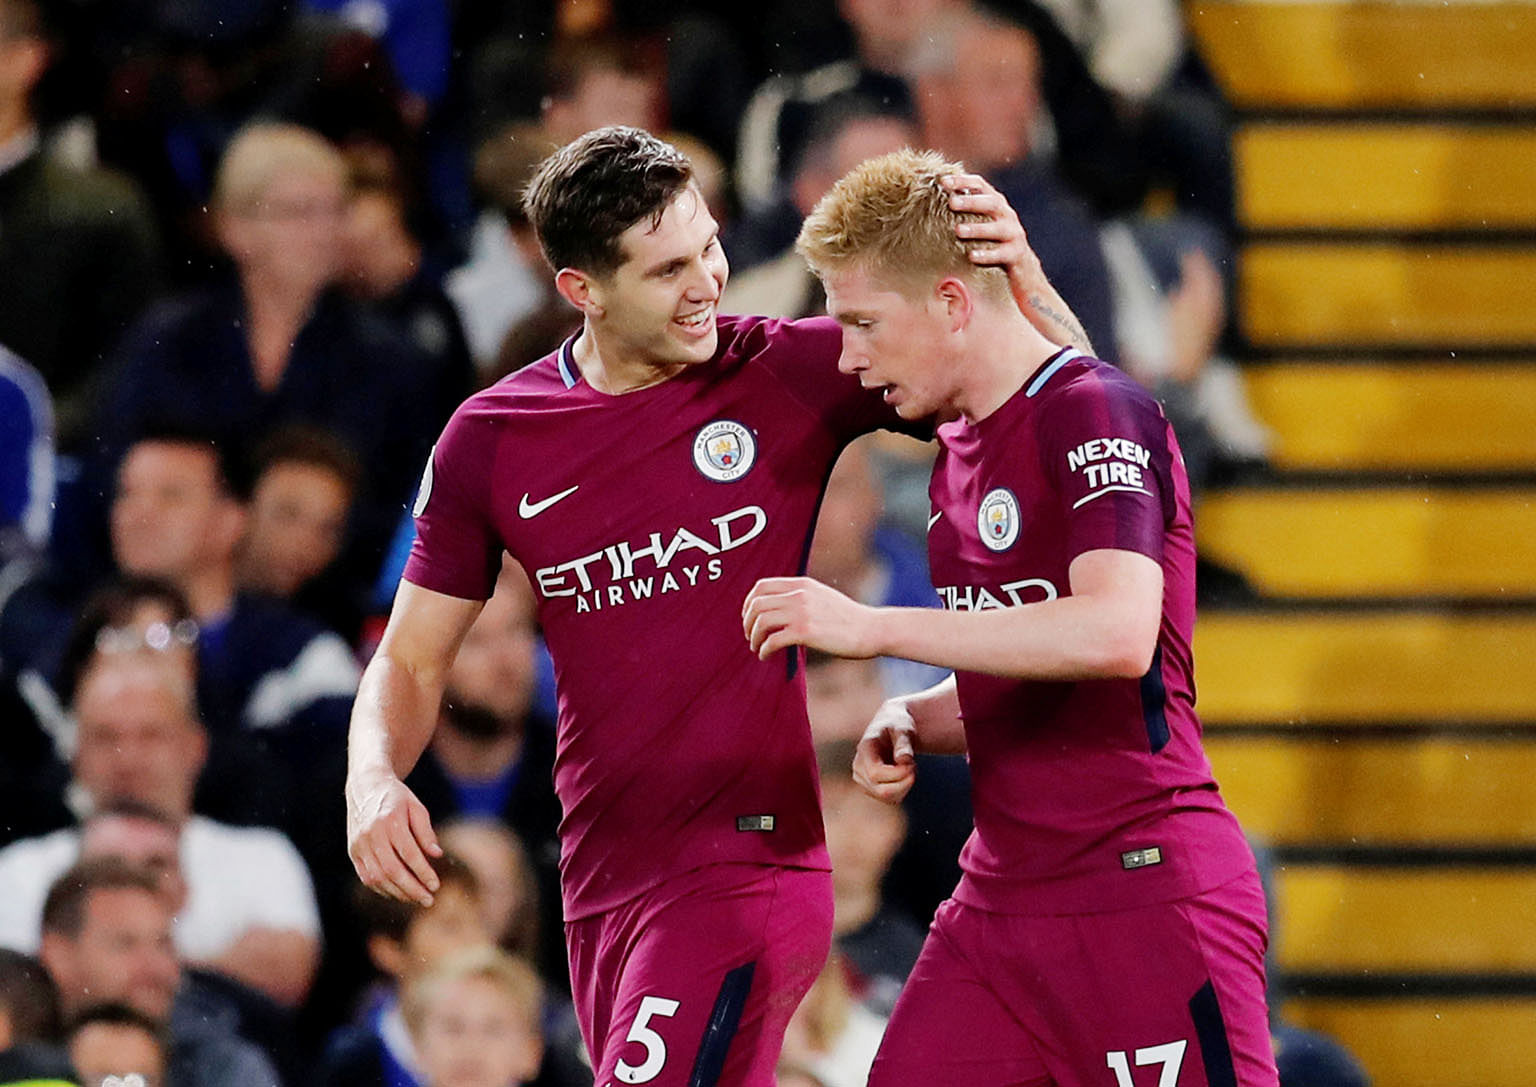 Manchester City team-mates John Stones and Kevin de Bruyne will be on opposing sides at the World Cup Finals for England and Belgium.